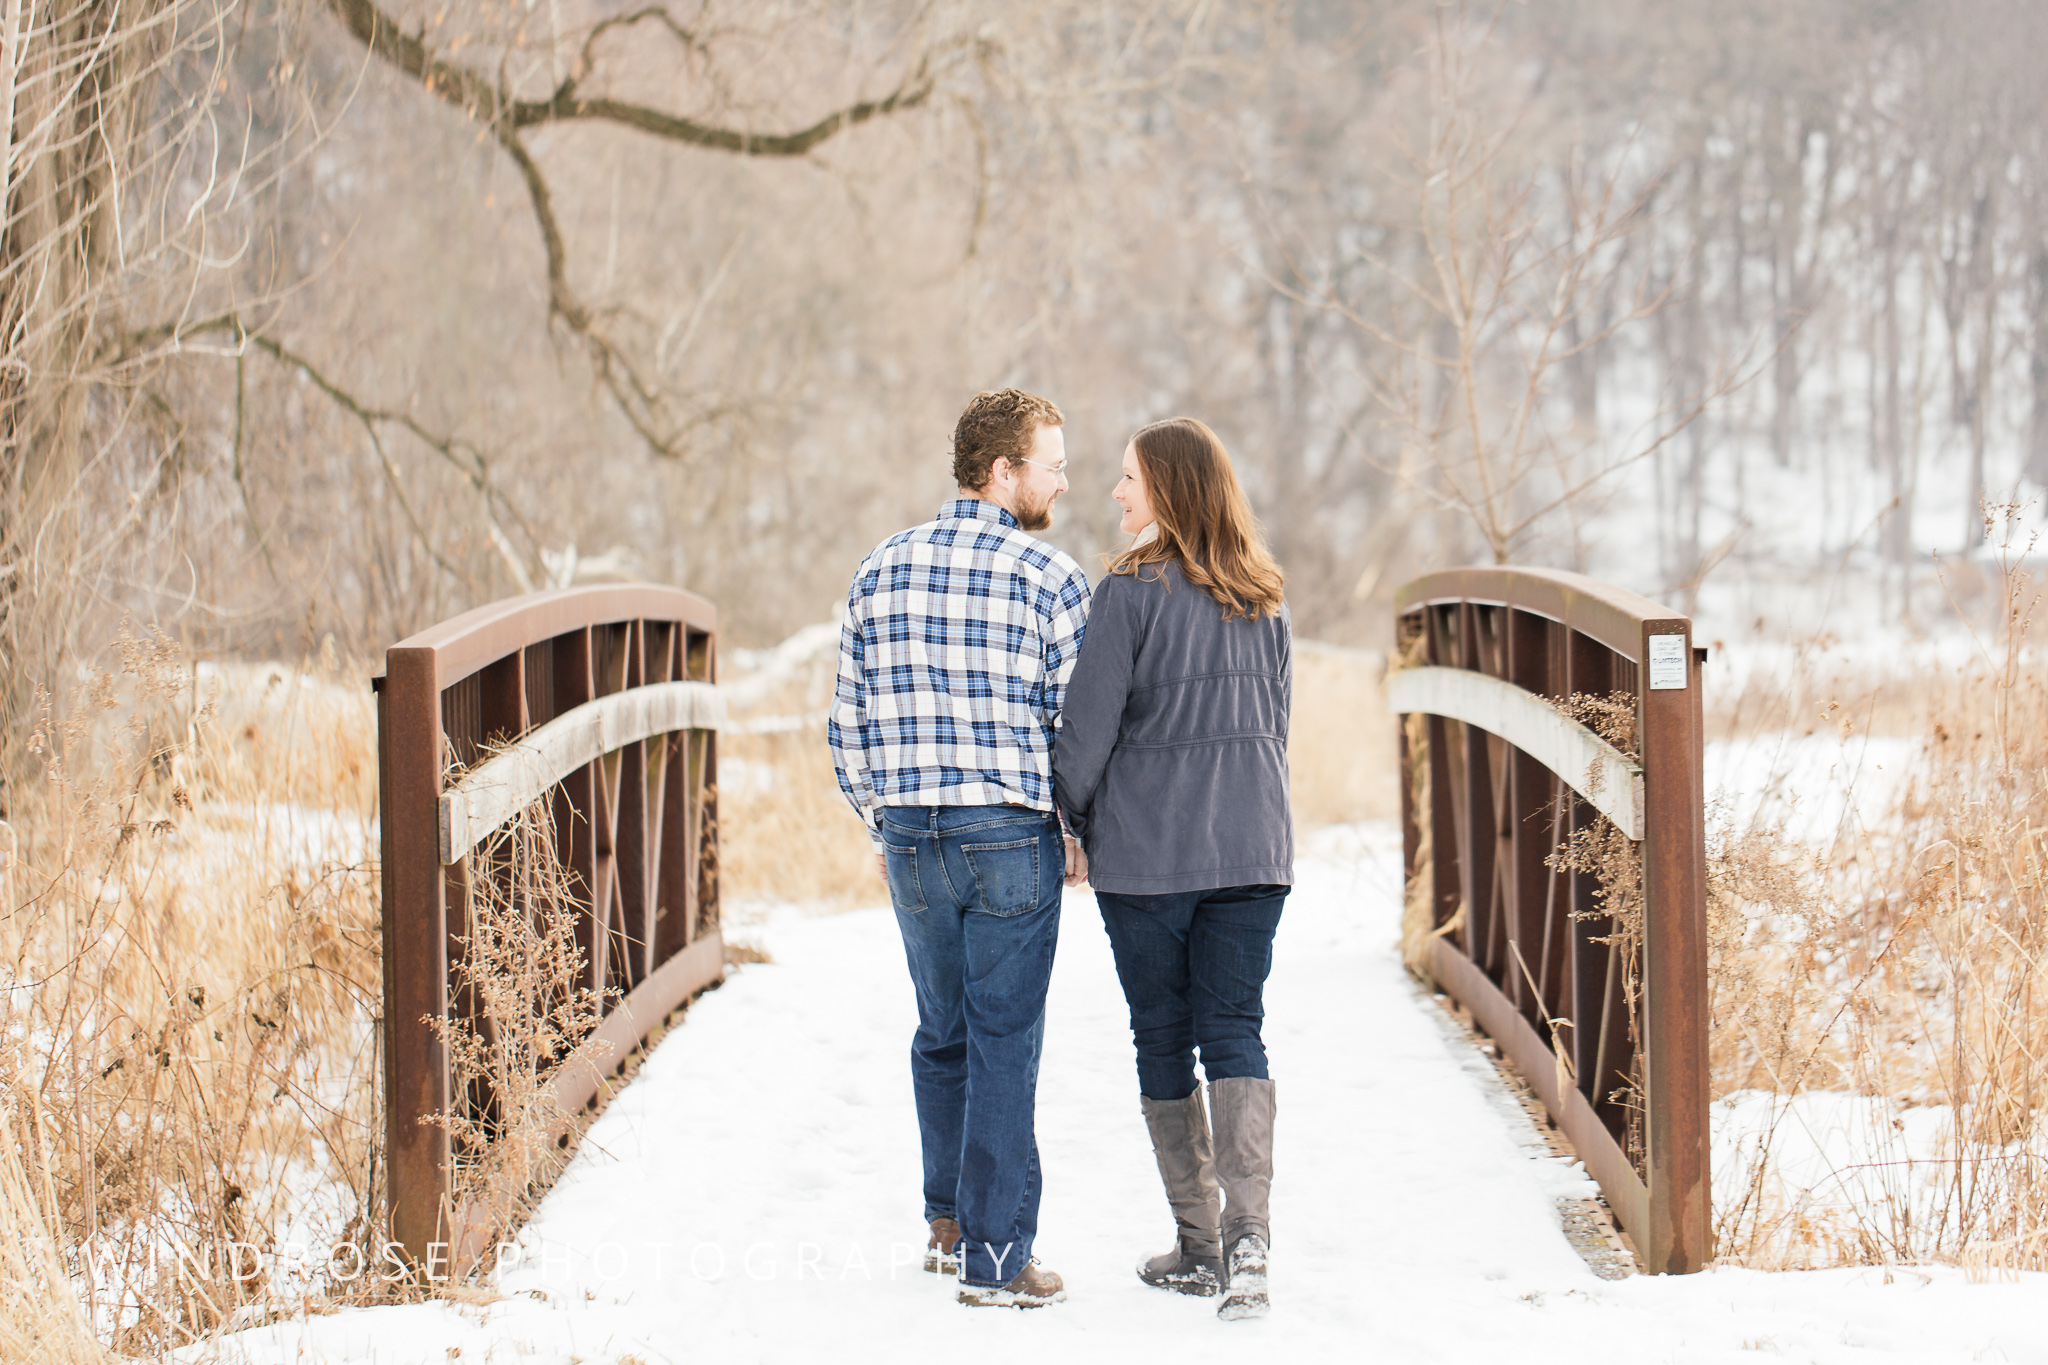 Quarry-Hill-Winter-Engagement-Photo-Session-20.jpg